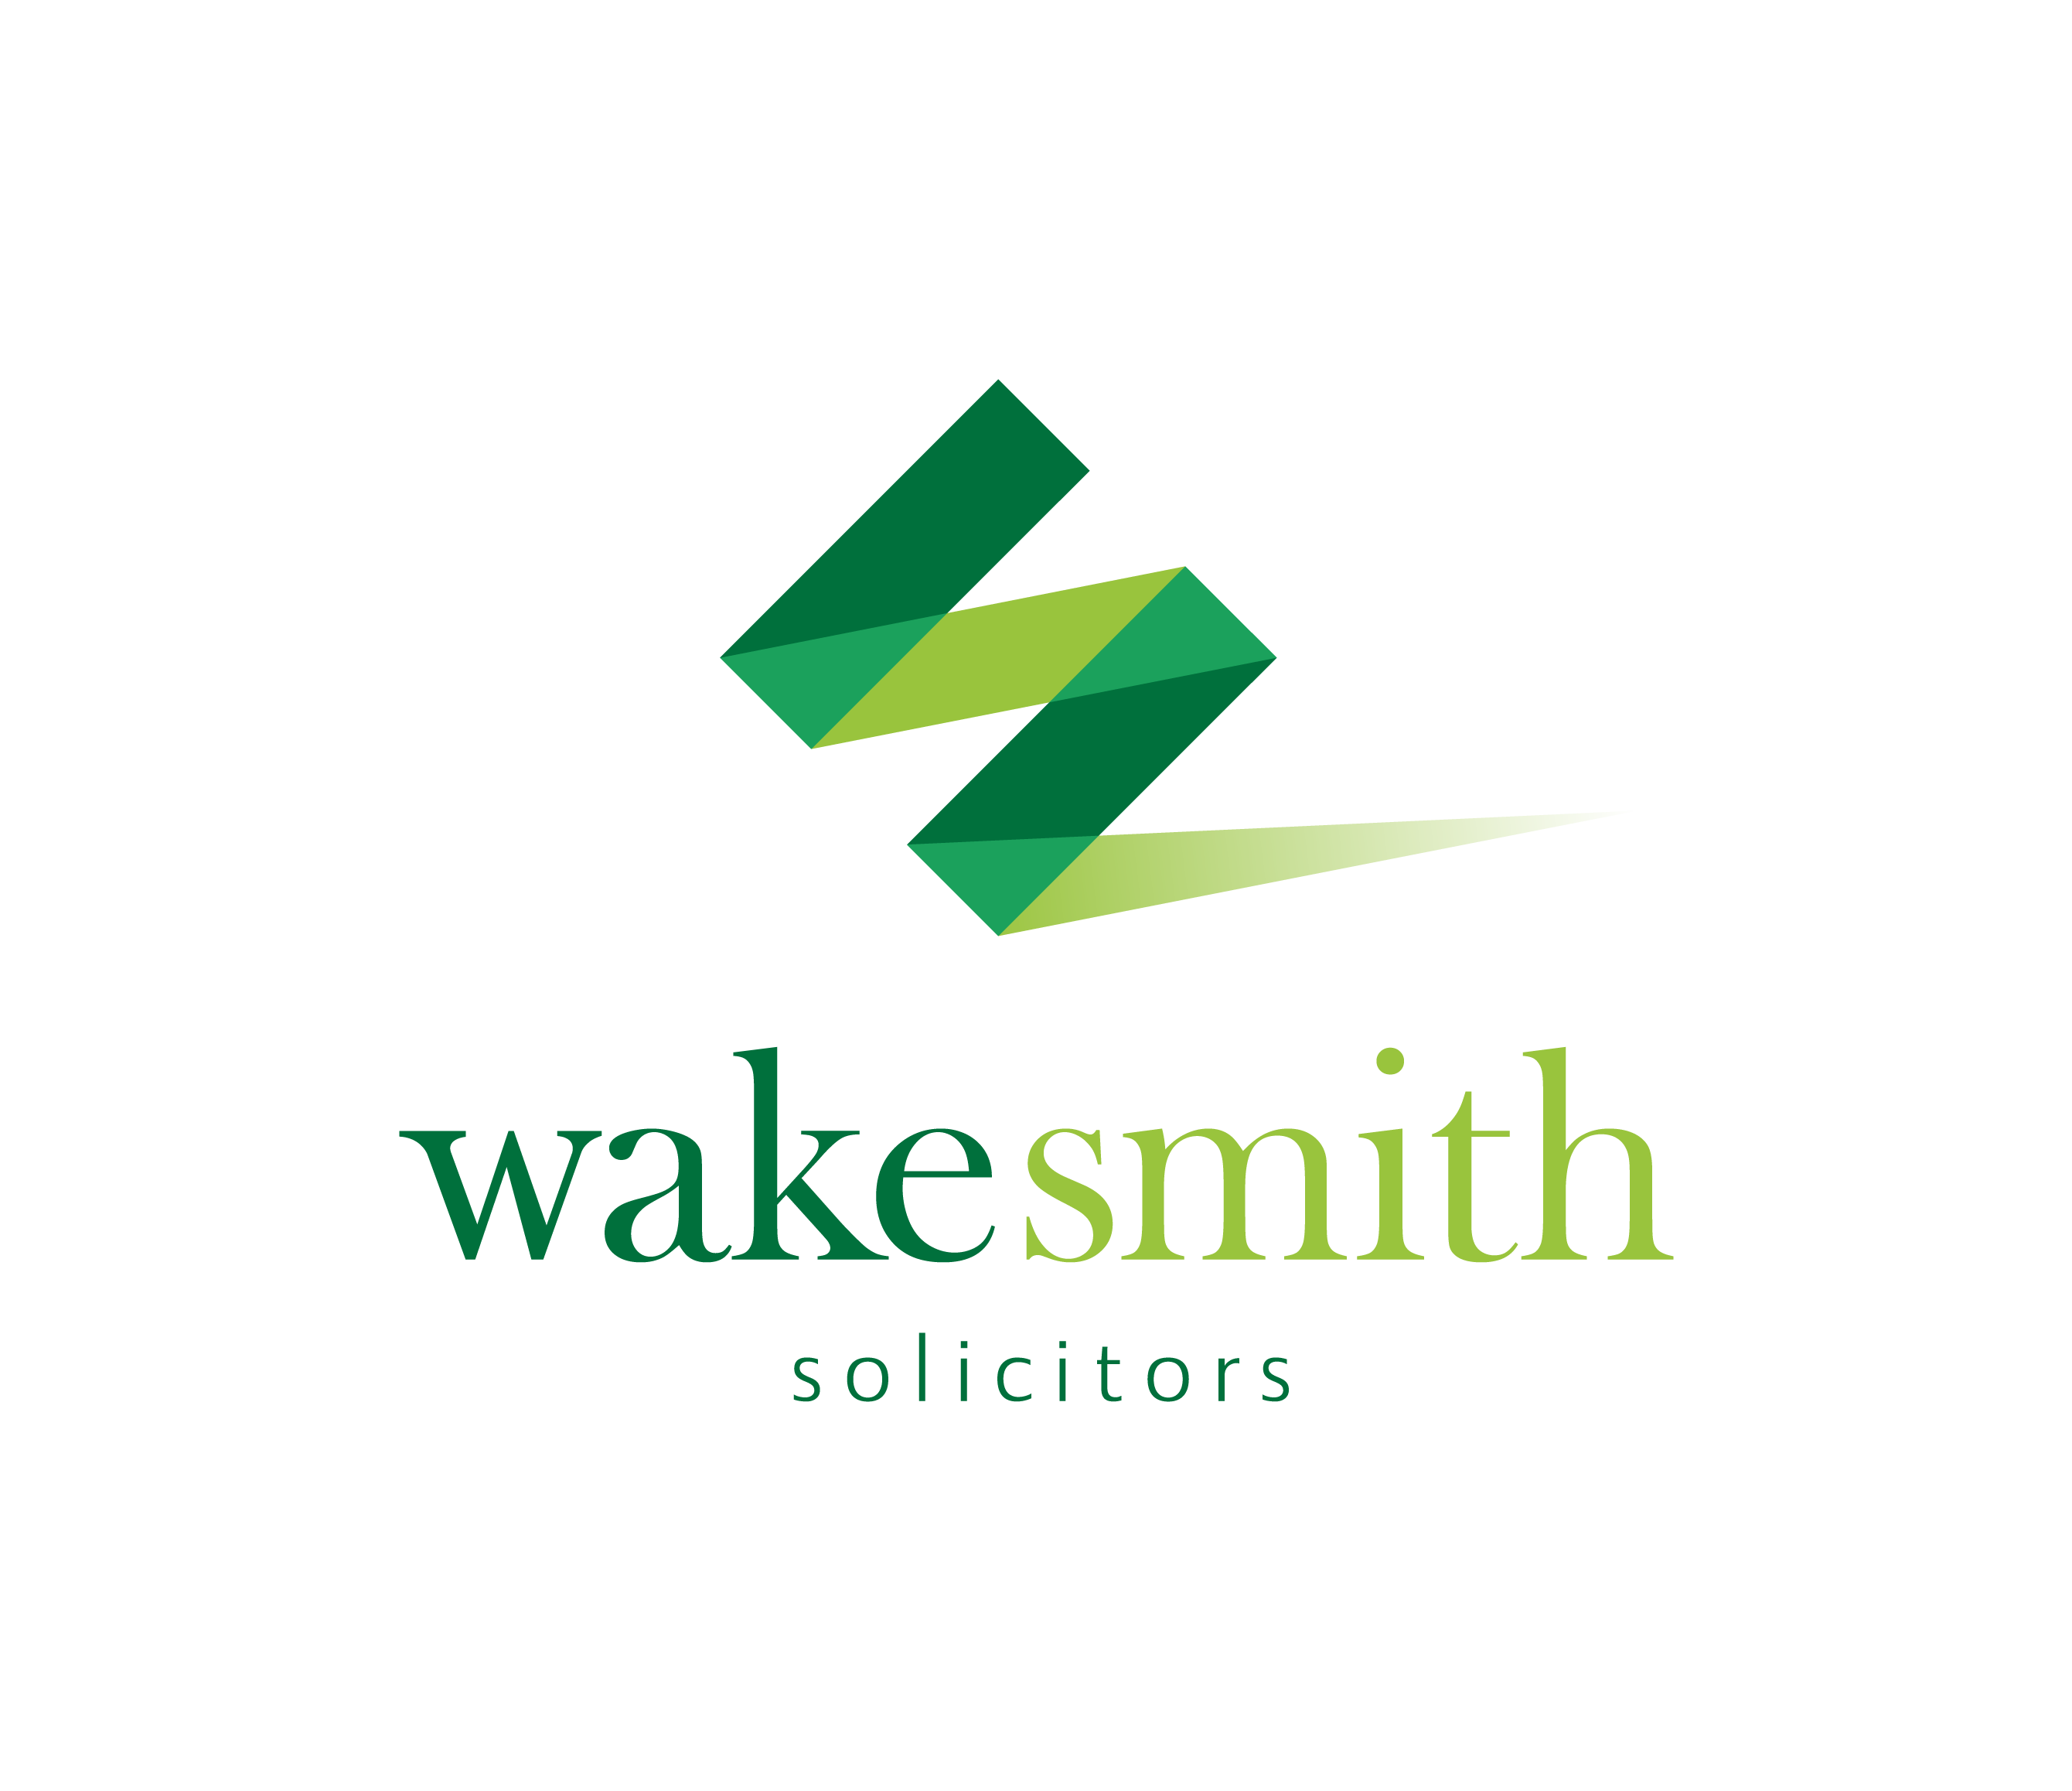 http://www.wake-smith.co.uk/